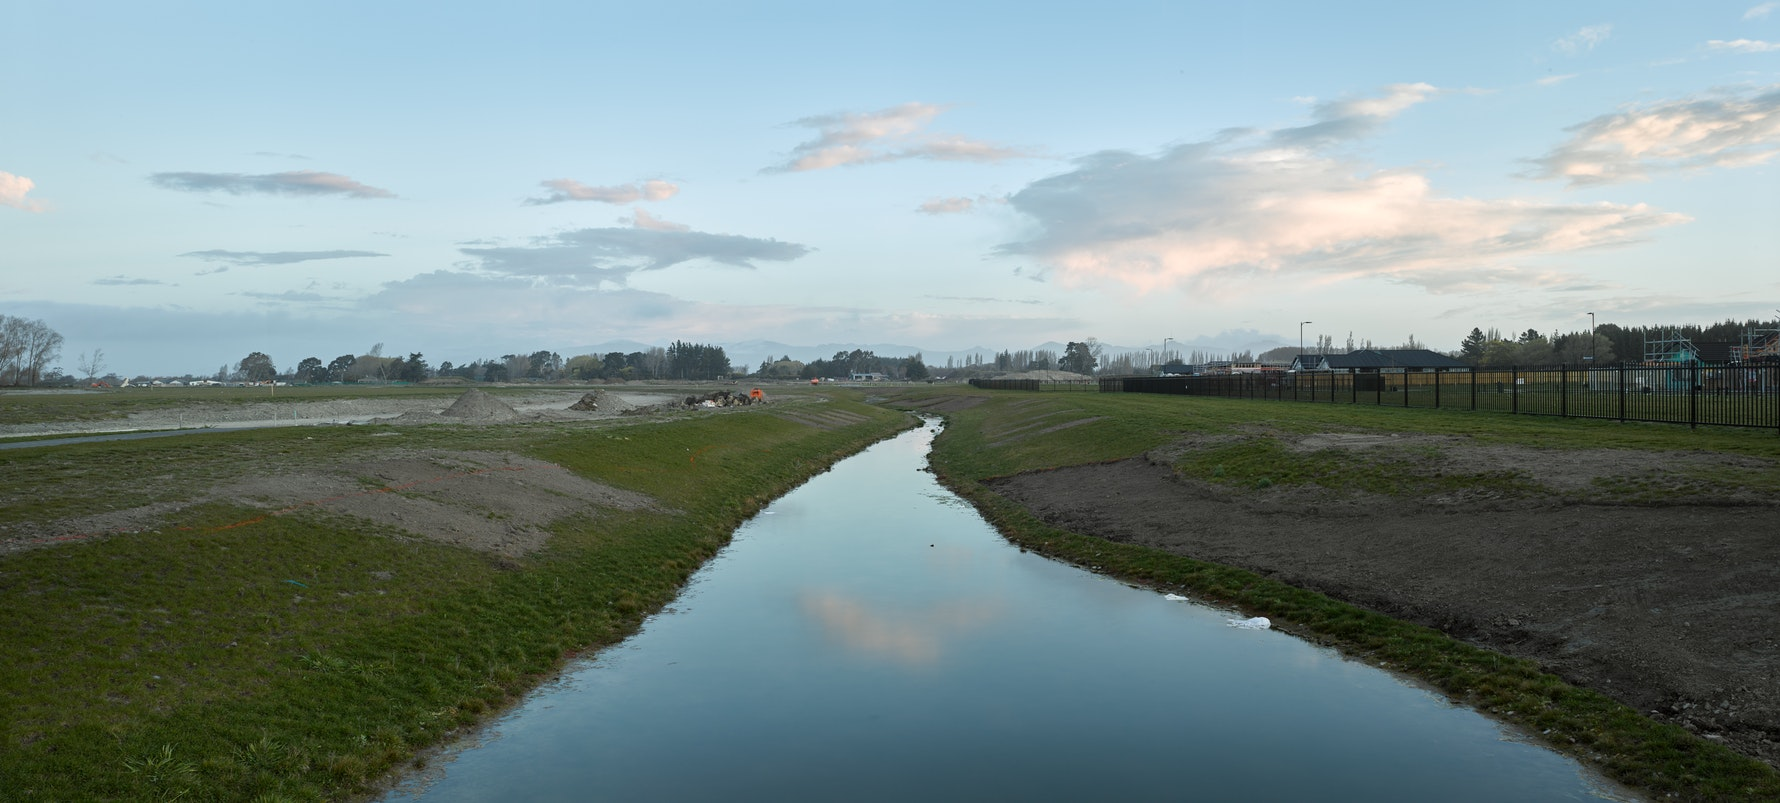 Prestons Park Subdivision, Prestons Park Drive, 2016. Facing South along water drainage channel of former marshlands.